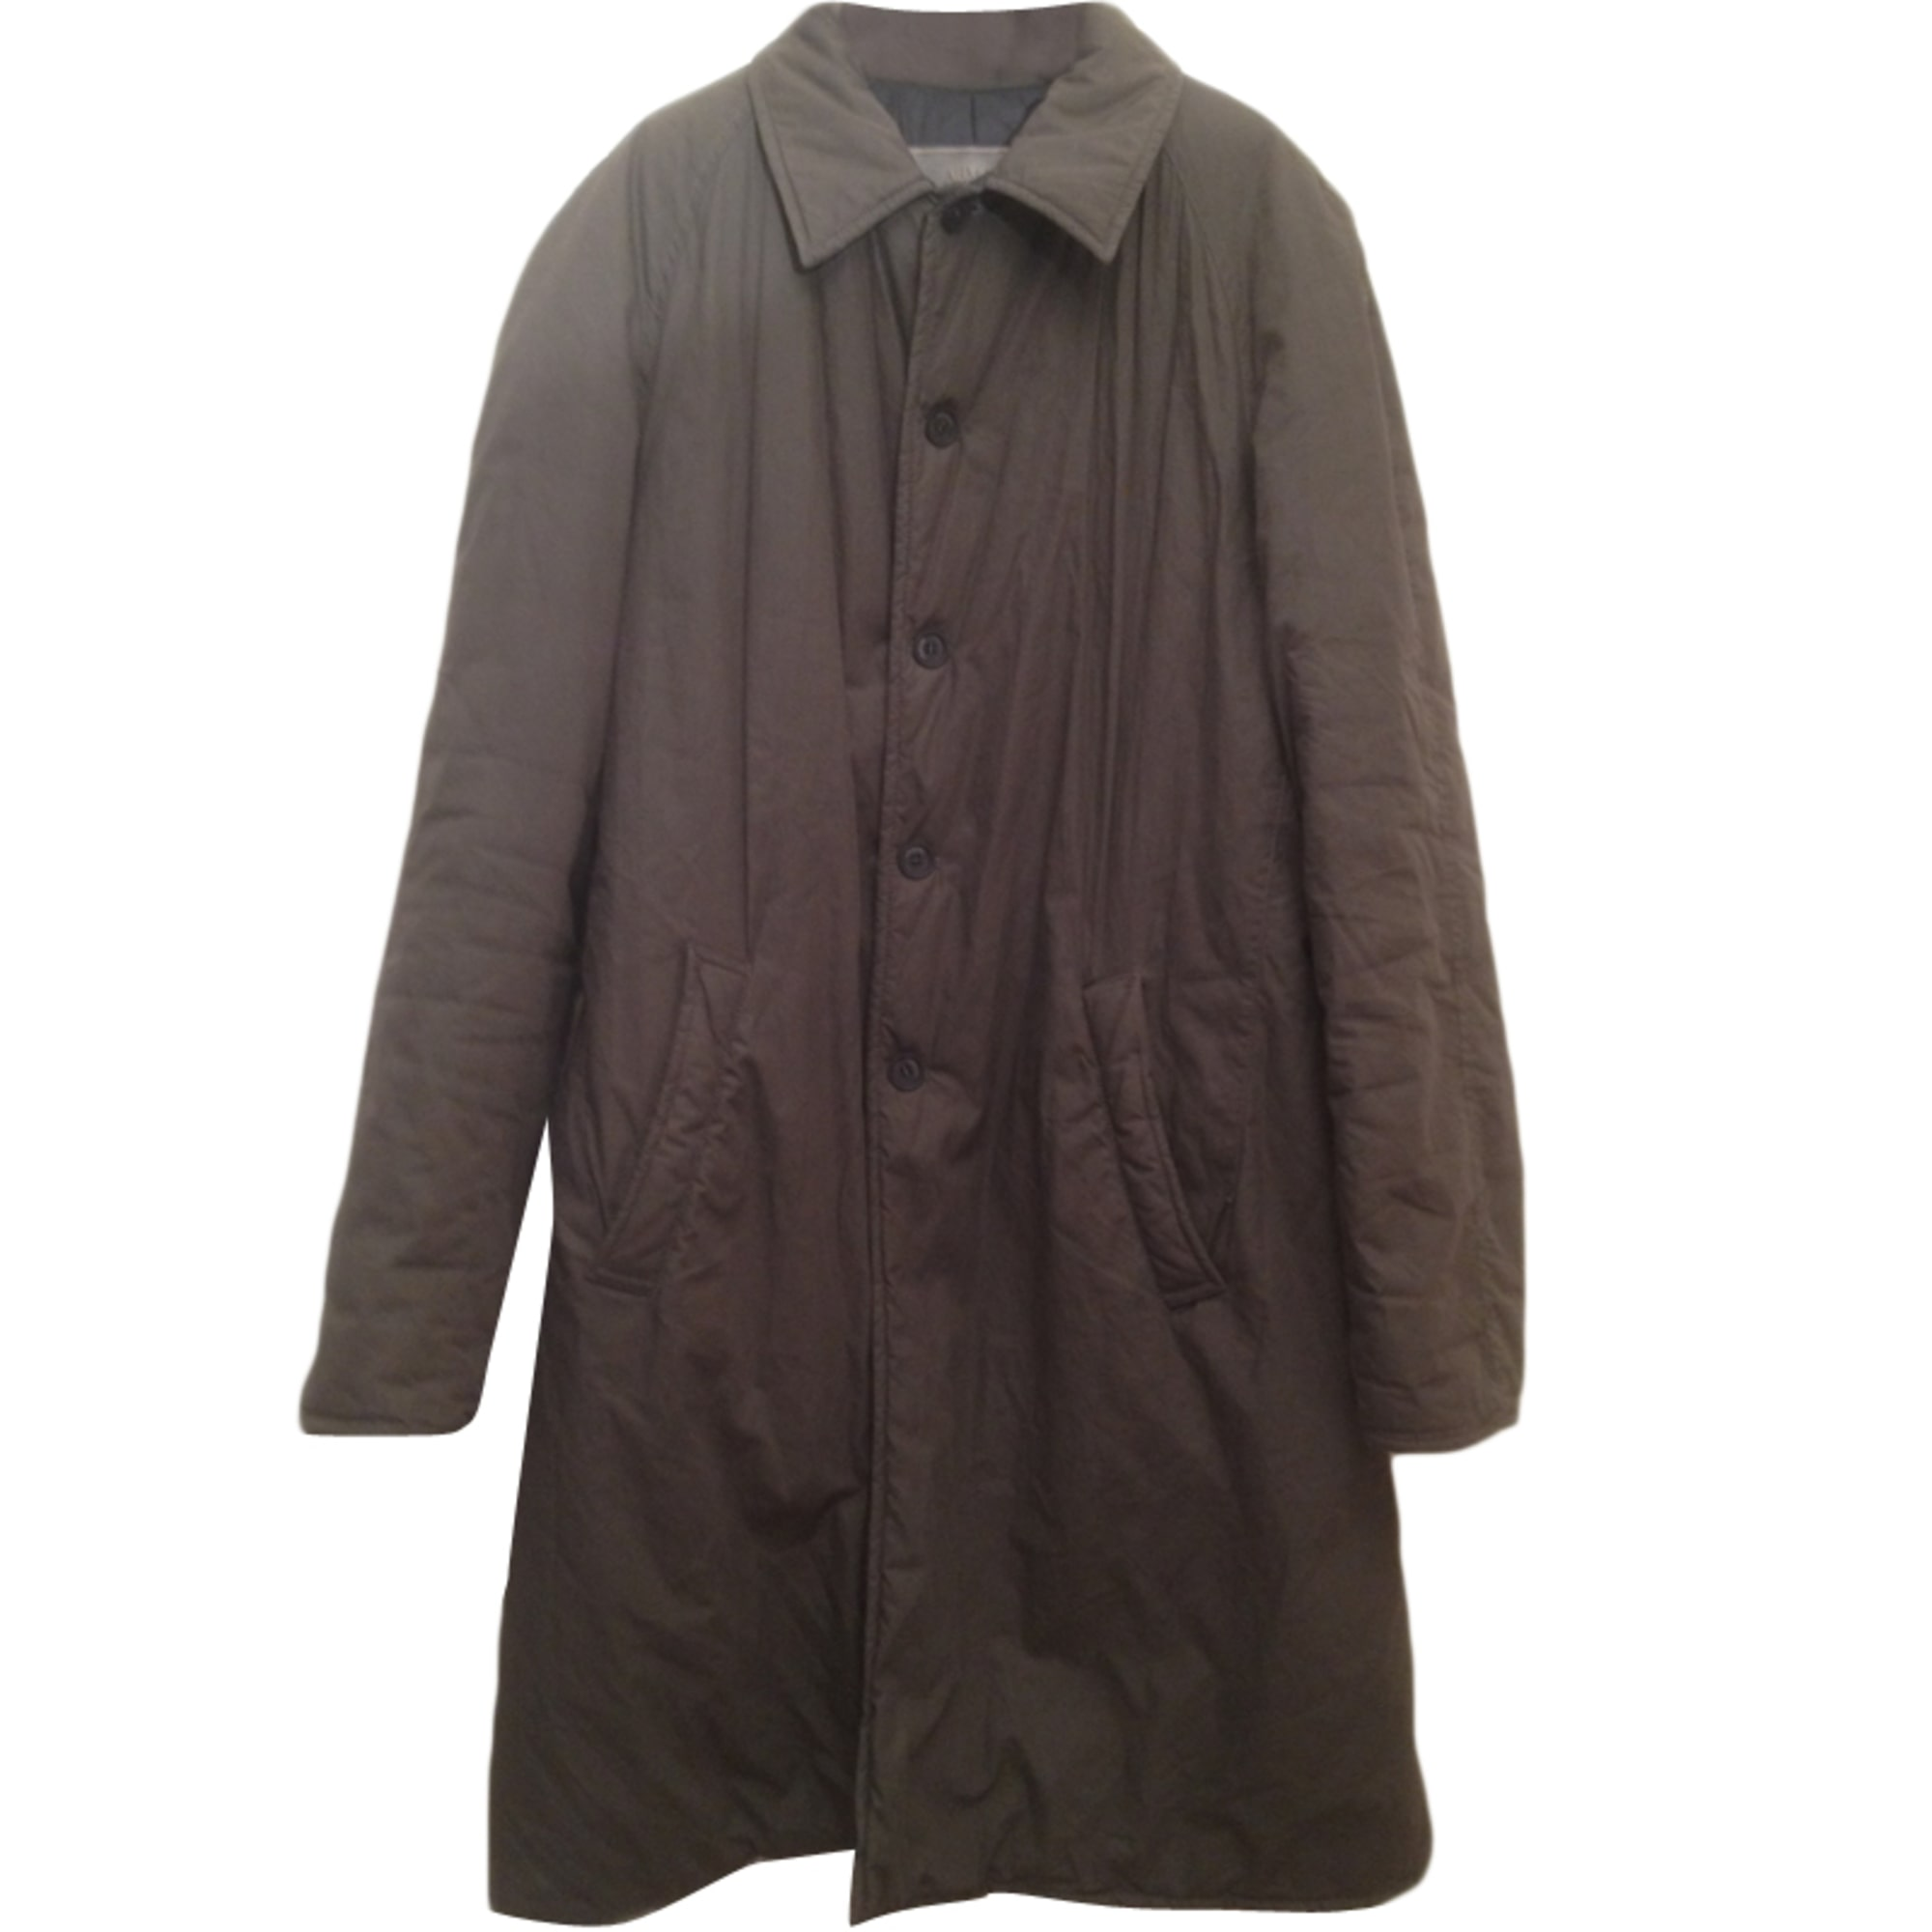 Imperméable, trench ARMANI Gris, anthracite